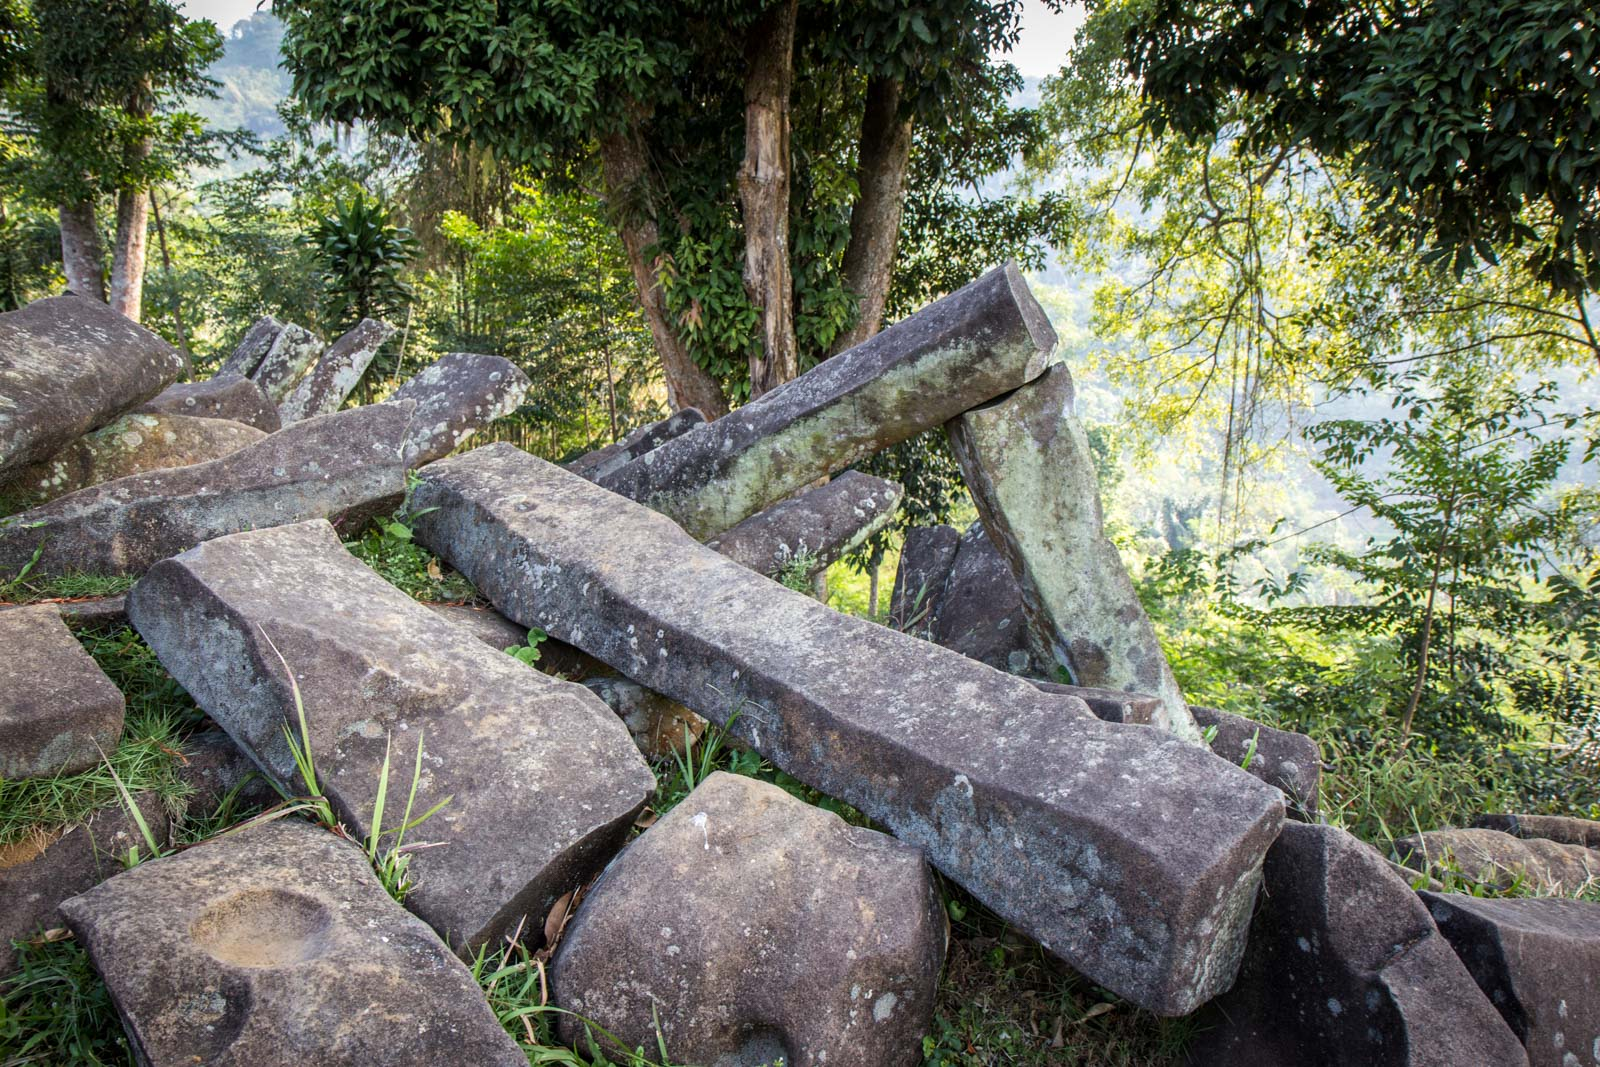 Gunung Padang Megalithic Site, Indonesia